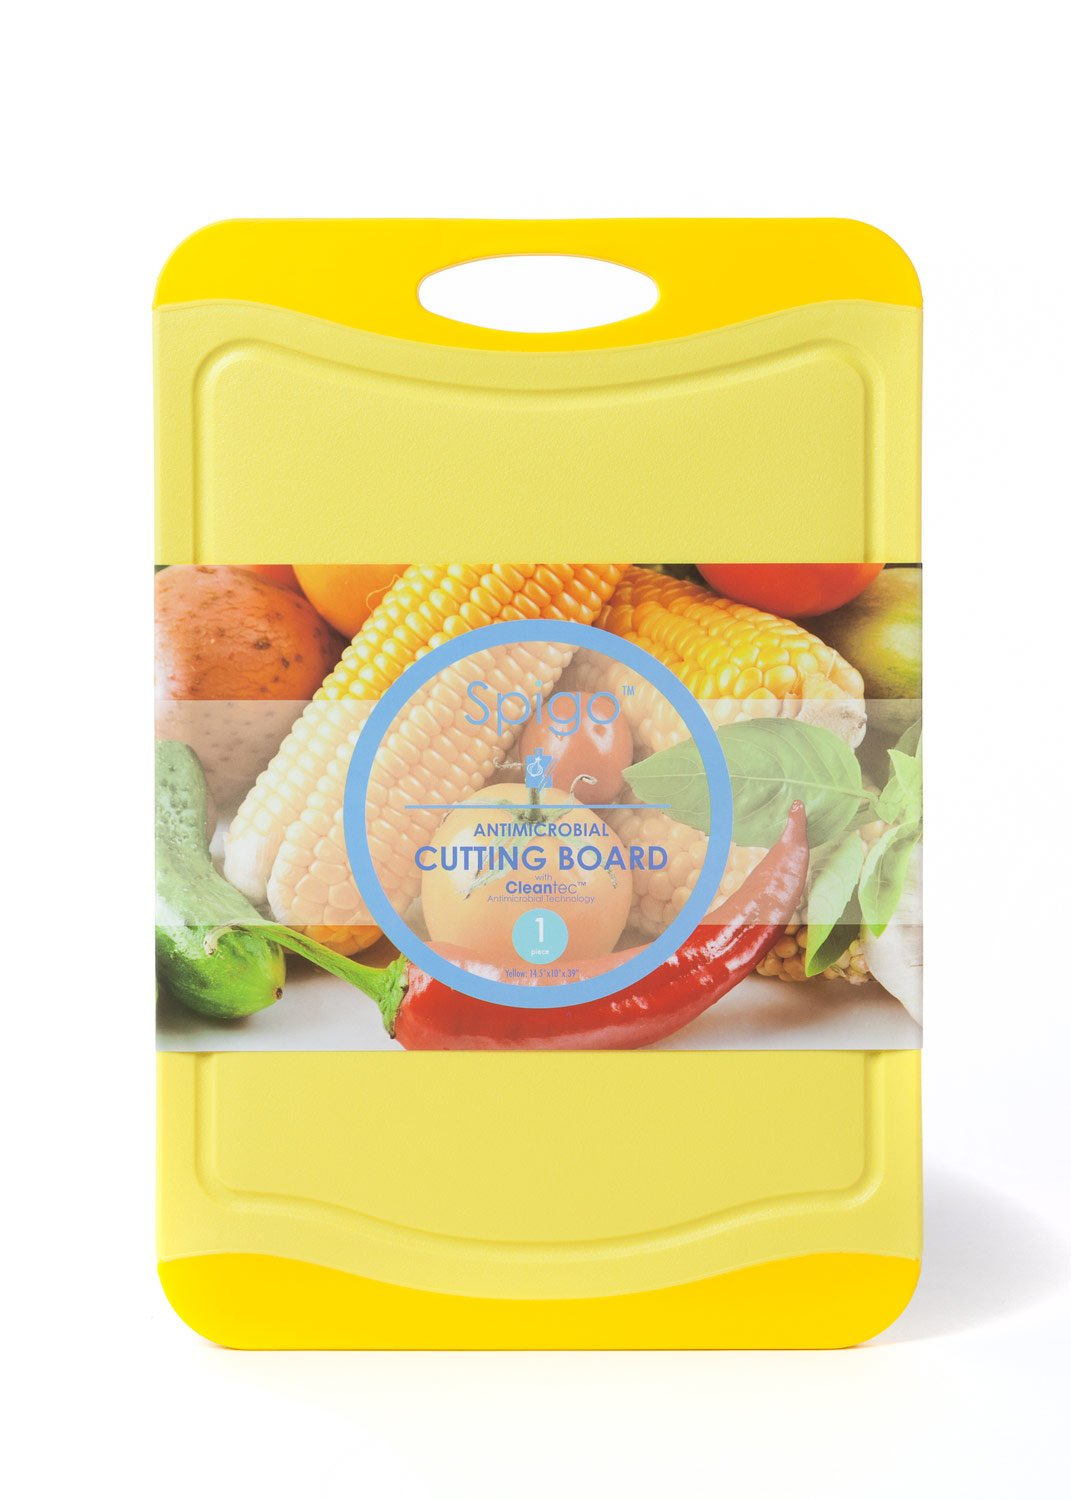 14.3x9.75x.39 Yellow CB-9001-YLW Spigo Antimicrobial Cutting Board with Cleantec Technology